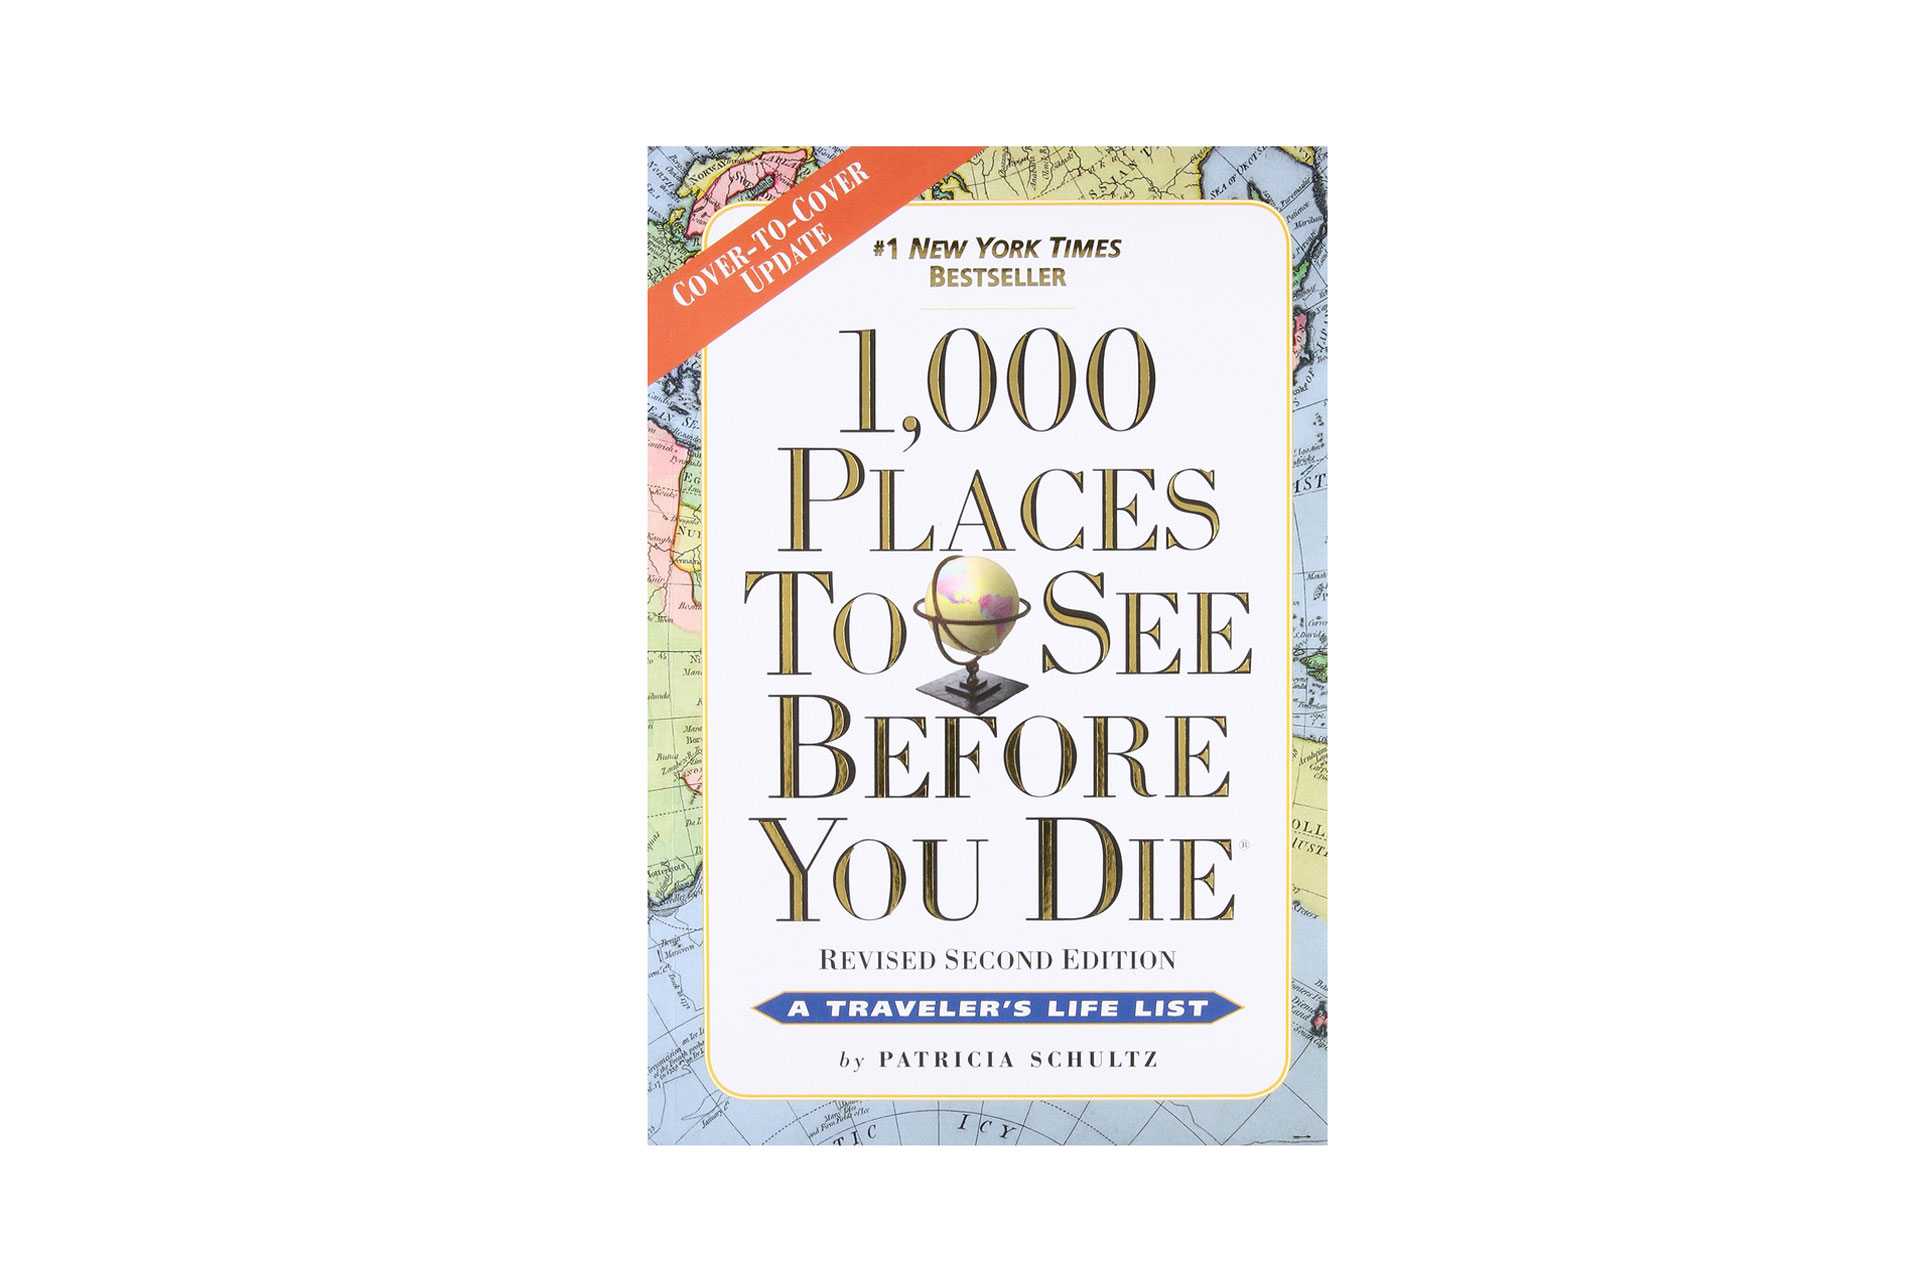 1,000 Places to See Before You Die Book; Courtesy of Amazon